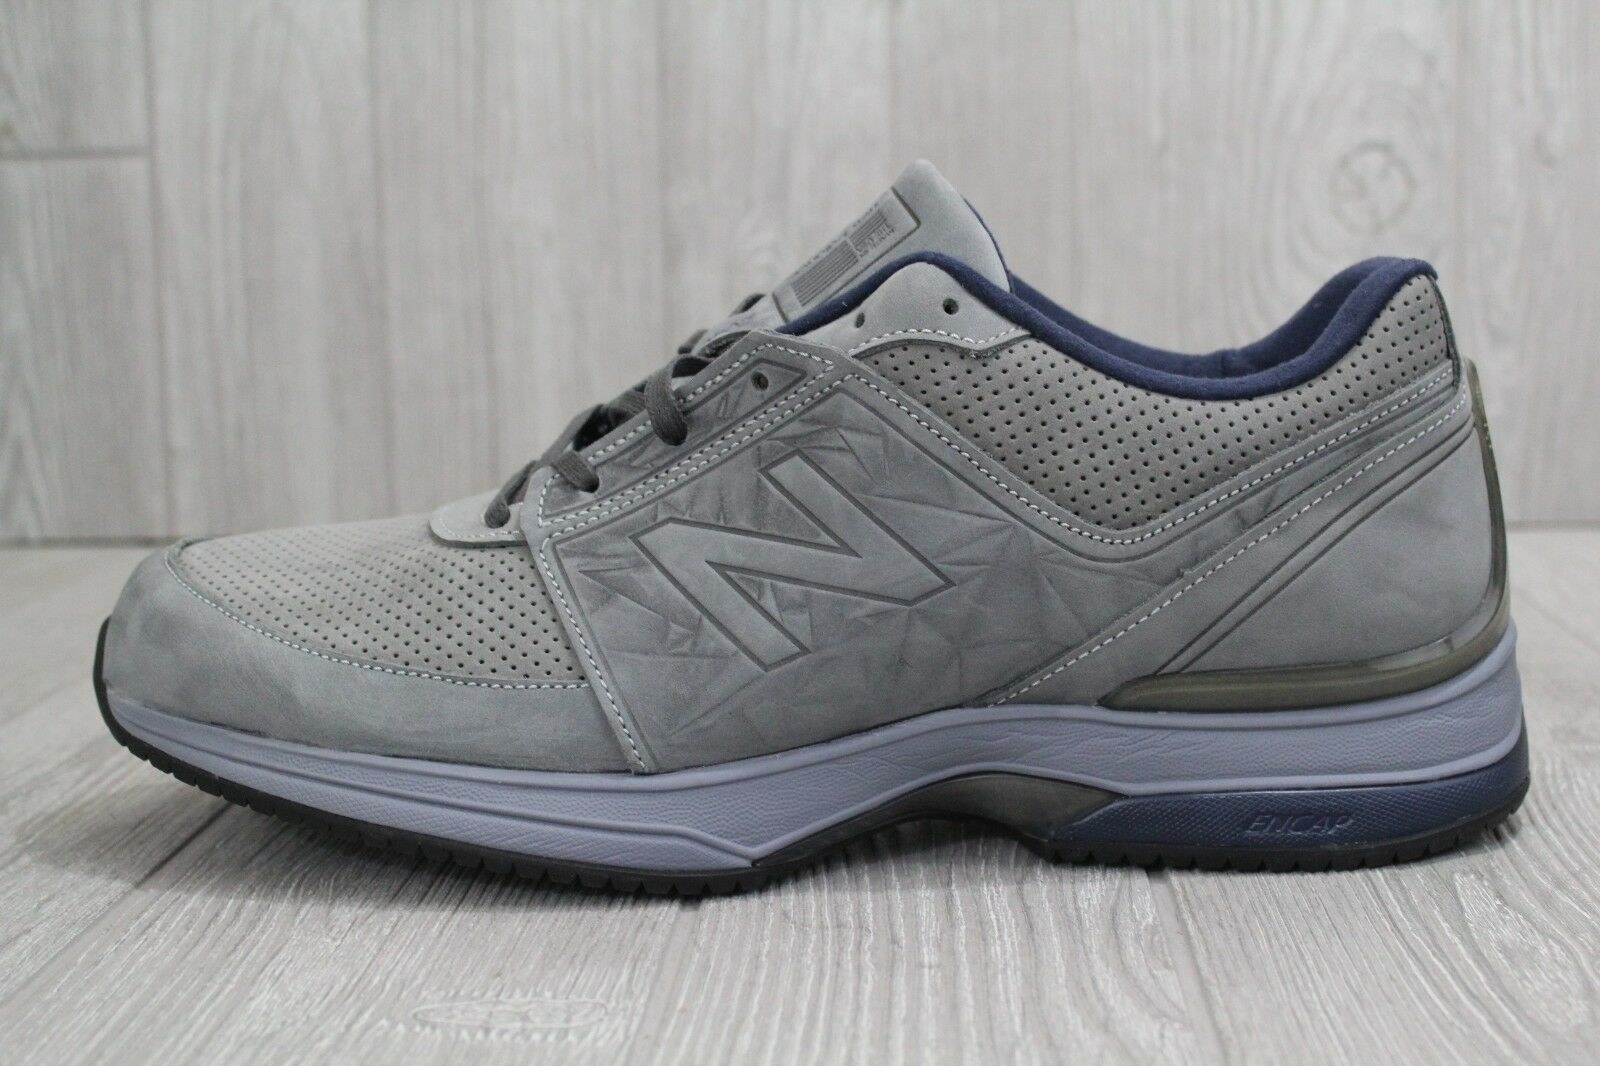 30 Men's New Balance Running Sneaker Size 14 2E Grey Suede Luxury shoes M2040GL3